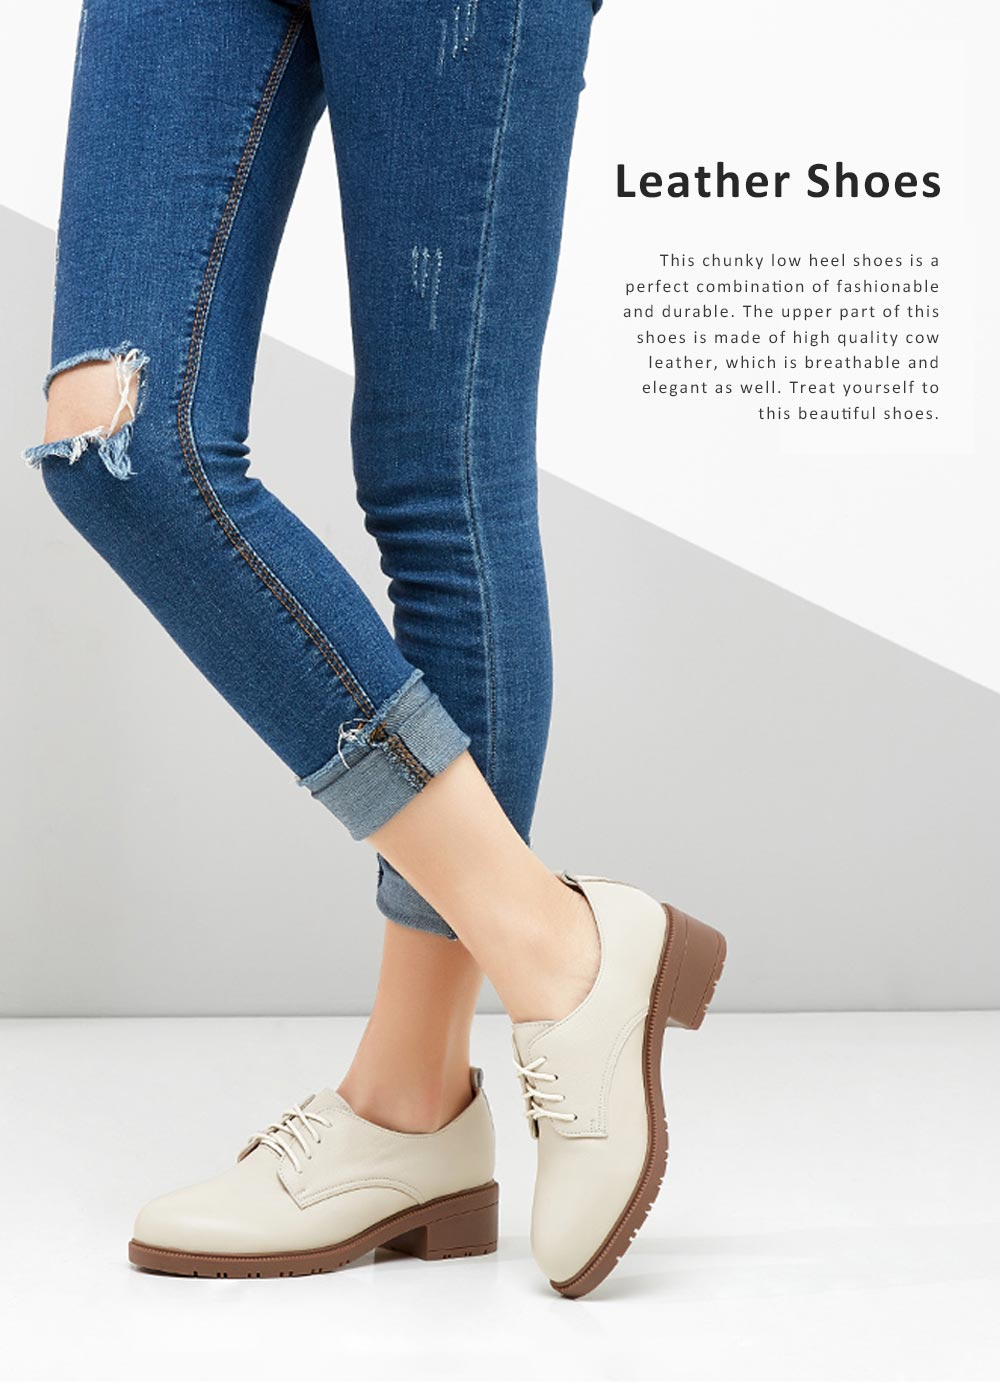 Leisure Leather Low Heel Shoes, Top PU Leather Material Thick Heel Shoes, Oxford Sole Women Shoes 2019 Spring 0